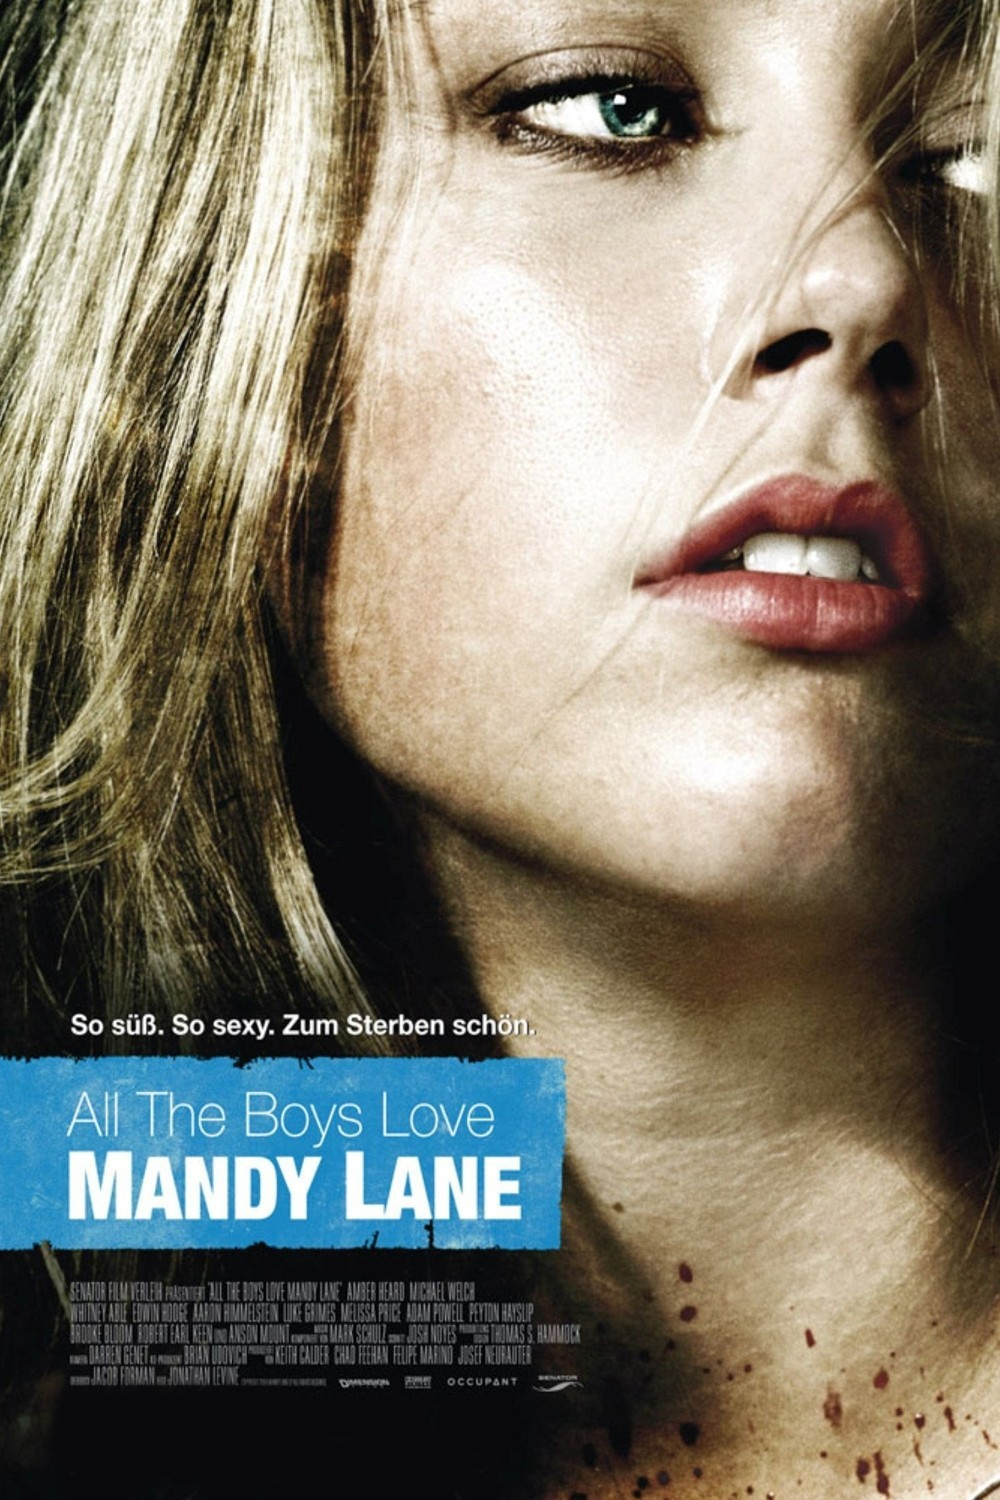 All The Boys Love Mandy Lane DVD Release Date